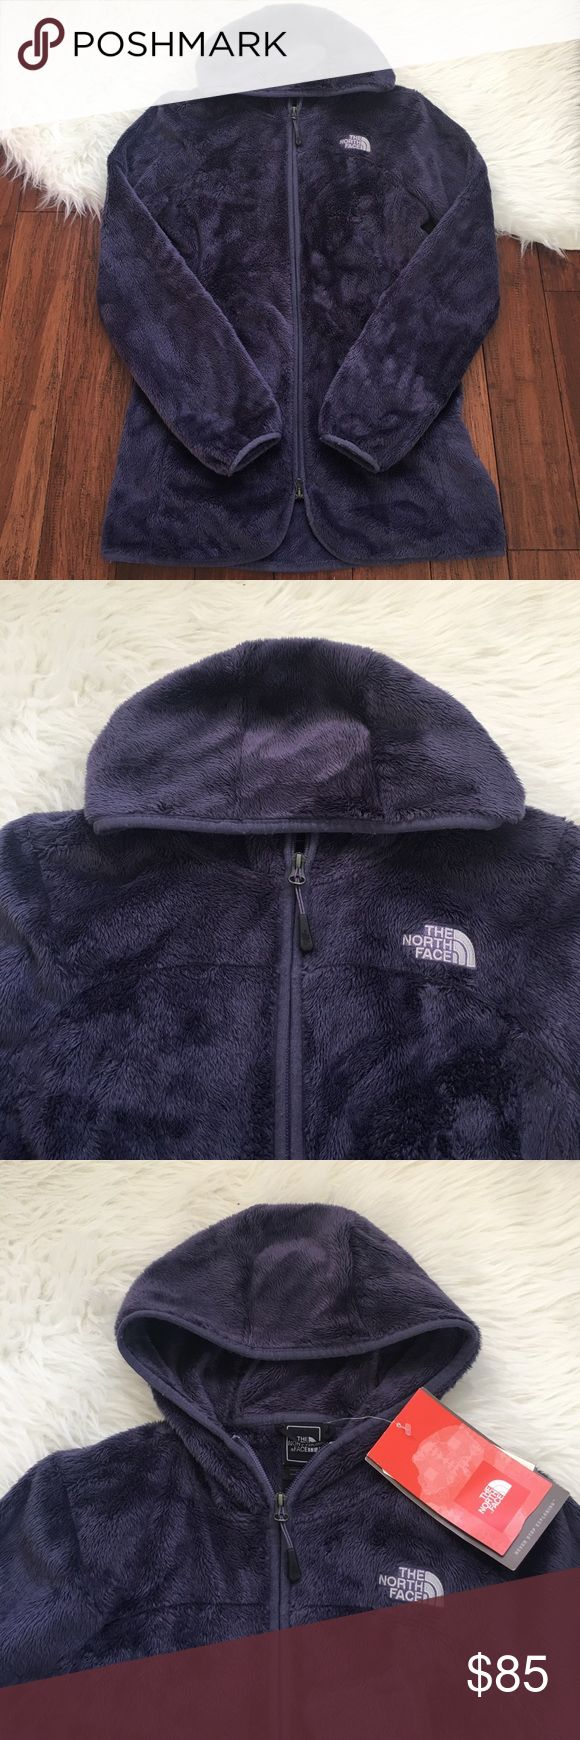 North Face Hooded Fuzzy Grayish Purple Winter Coat Brand new with the tags attached. Never been worn. Features a hood and two front zipper pockets. Tad bit longer than the normal Fuzzy North Face. This jacket is guaranteed to keep you warm! Purplish gray in color. The North Face Jackets & Coats